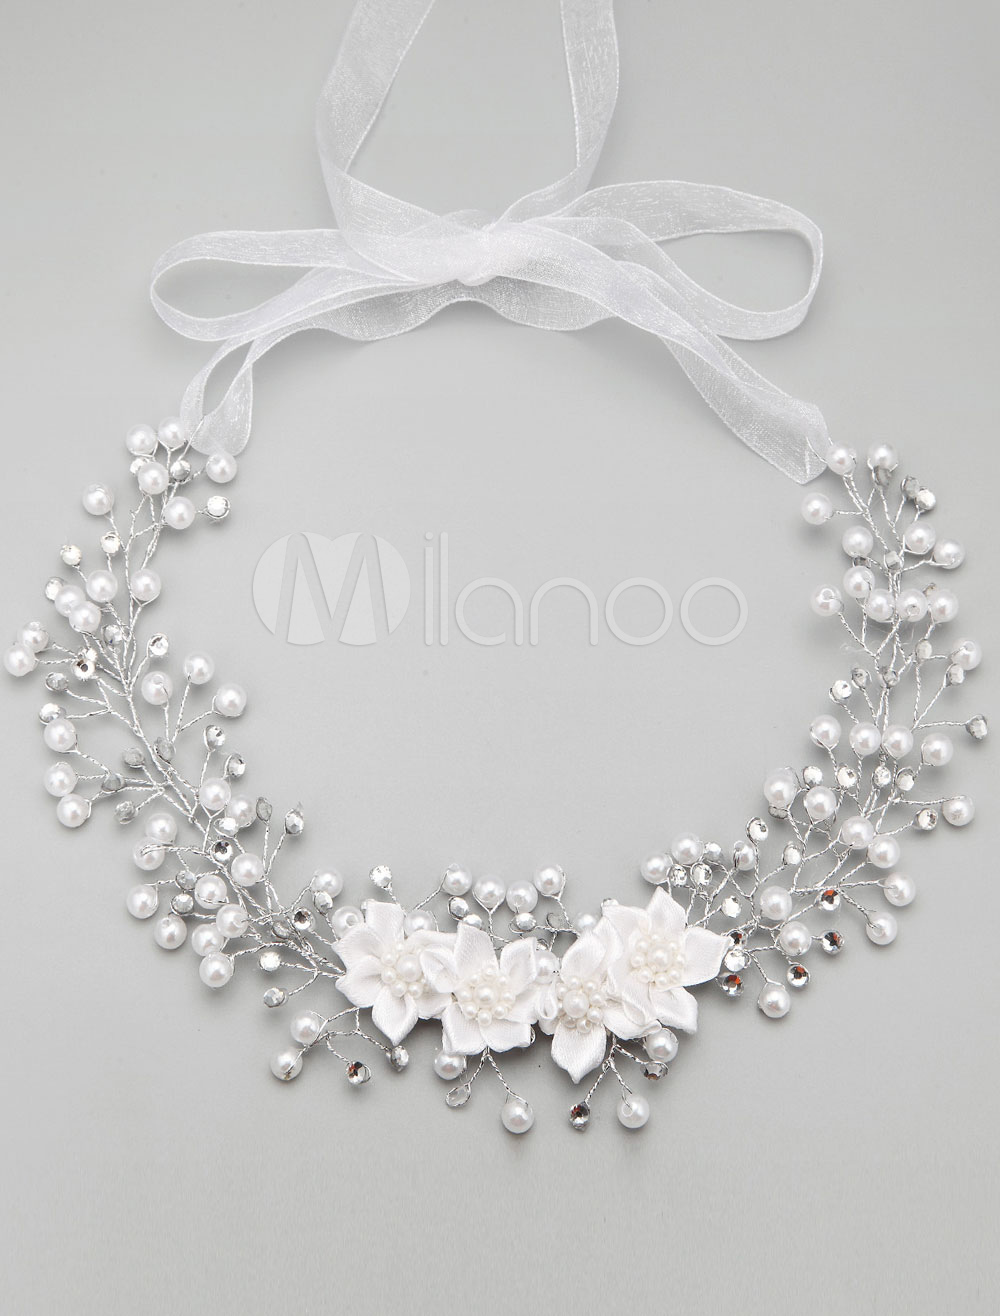 Buy Rhinestone Wedding Necklace Pearls Flower Decoration Bridal Necklace for $14.99 in Milanoo store